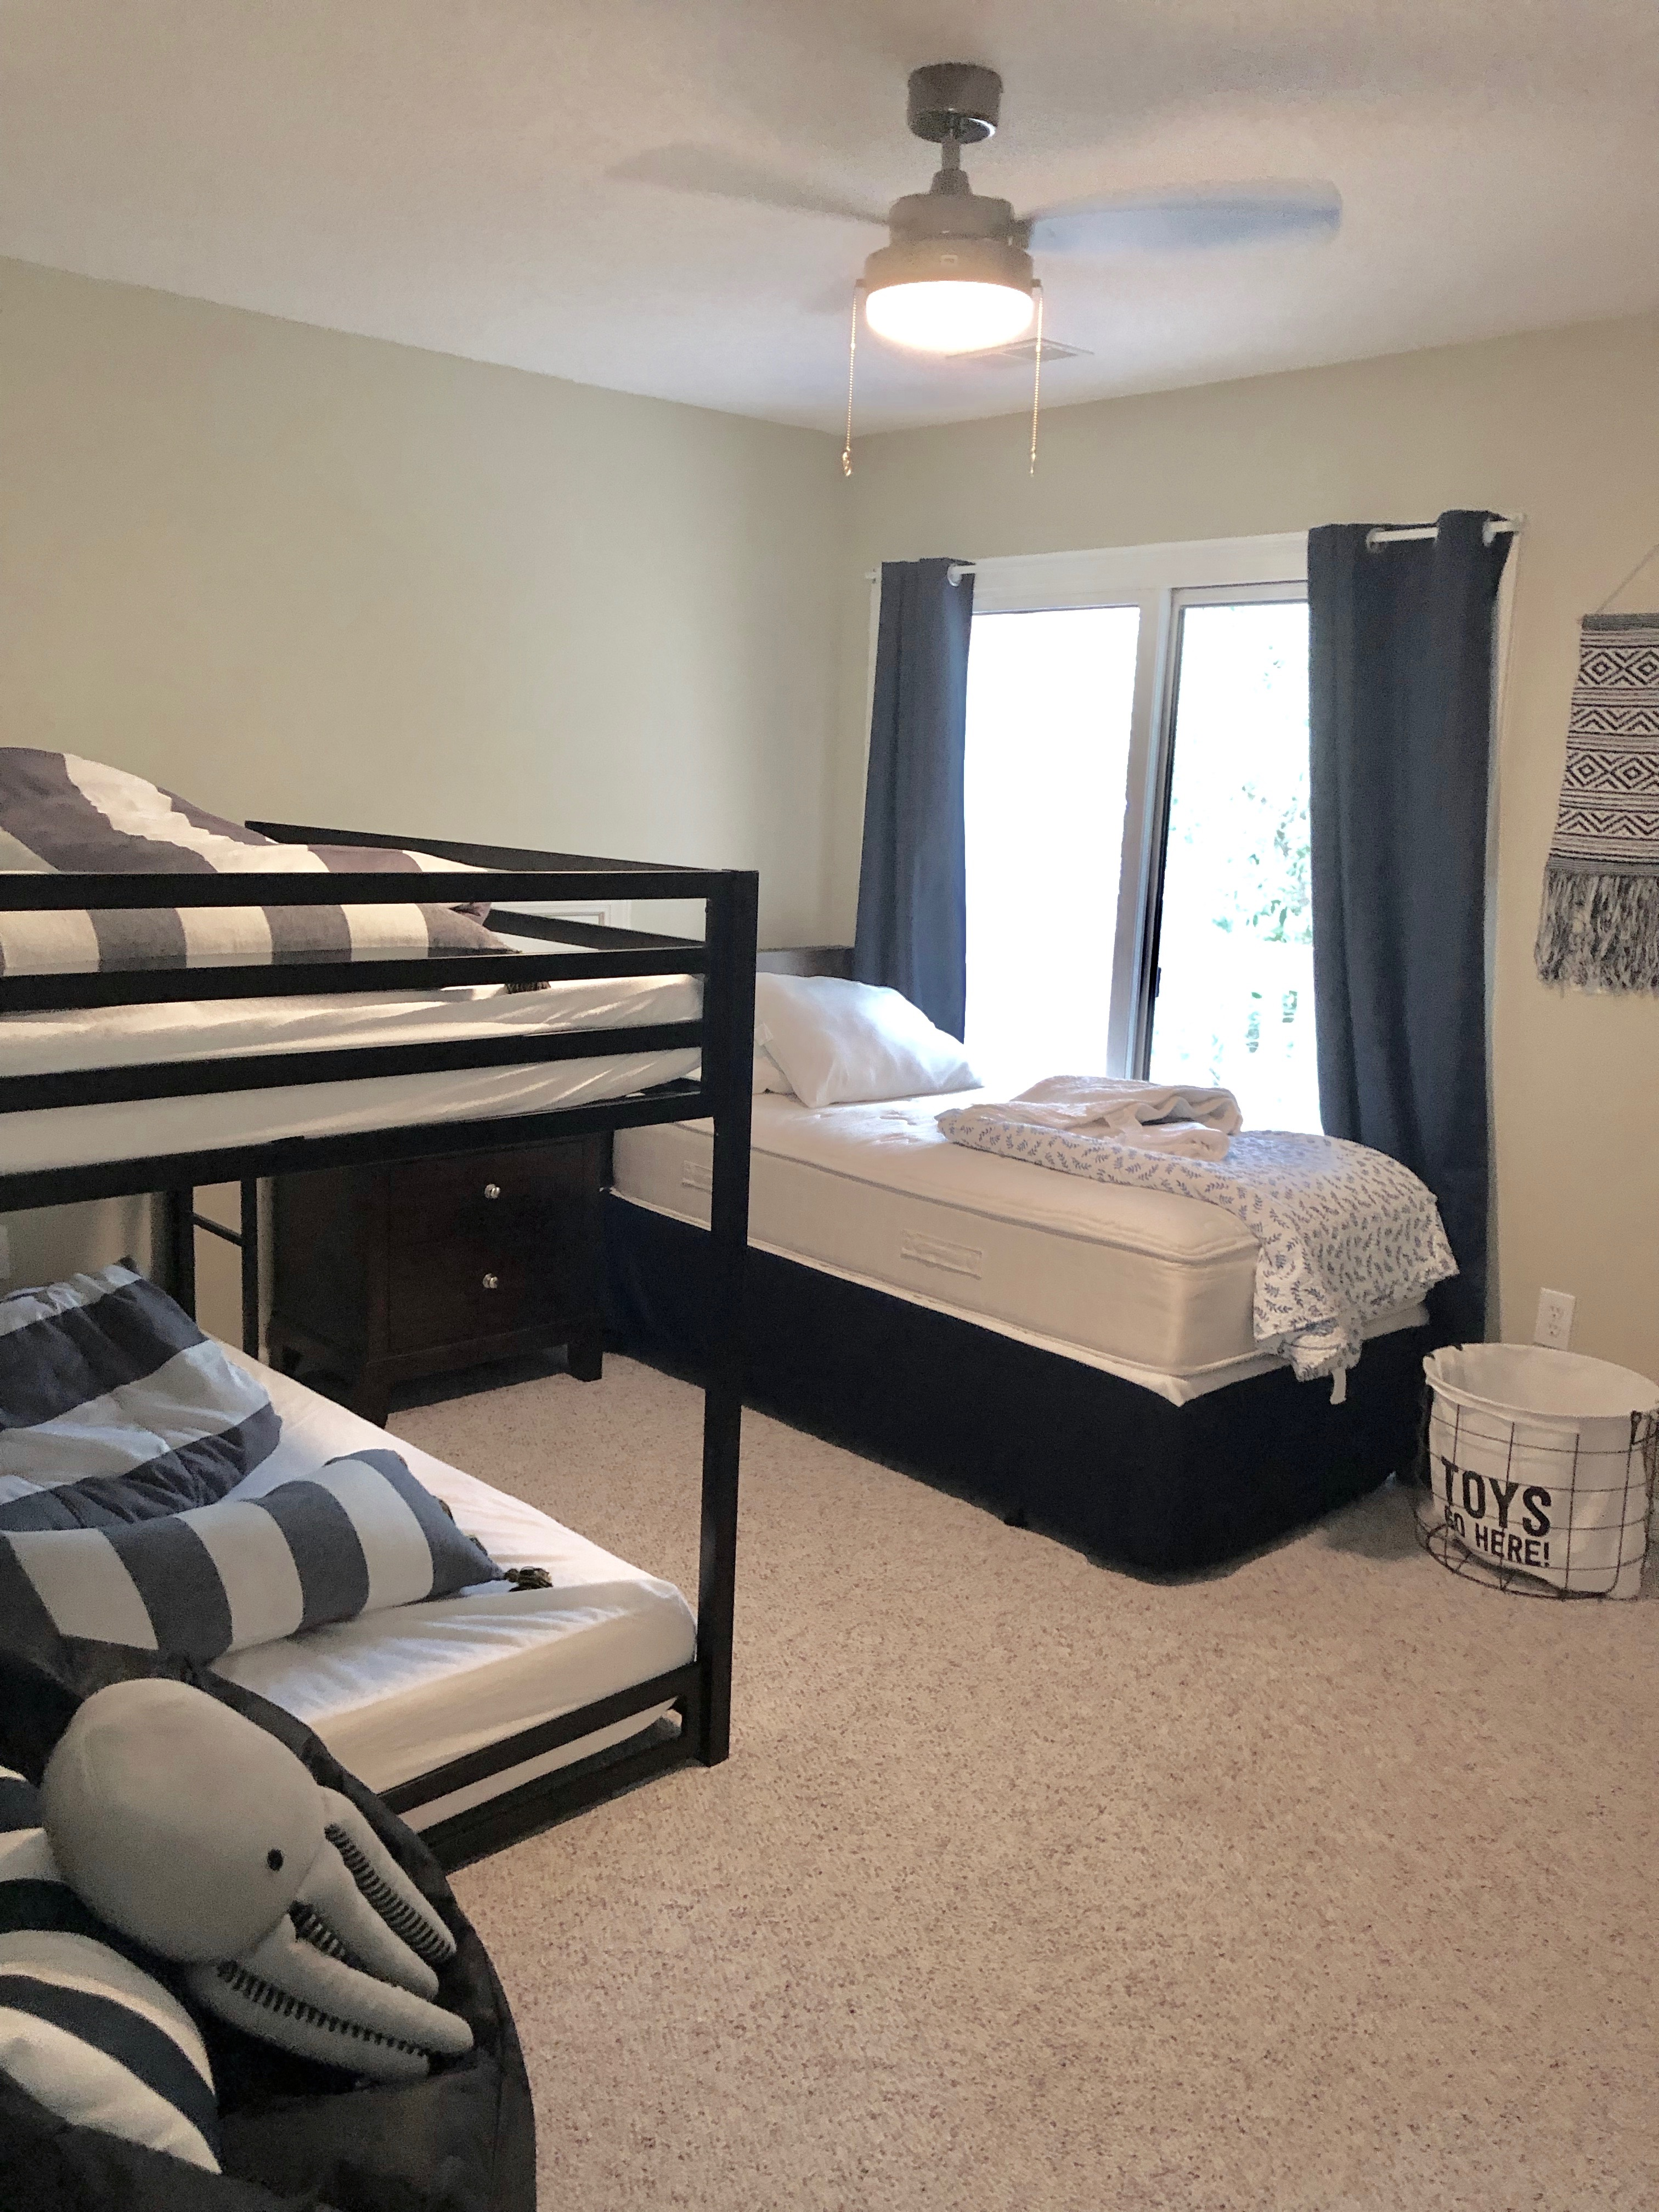 Recently Added Full Over Full Bunk Beds with Twin Bed Guest Bedroom. Weight capacity for each bed is maximum 300lbs.